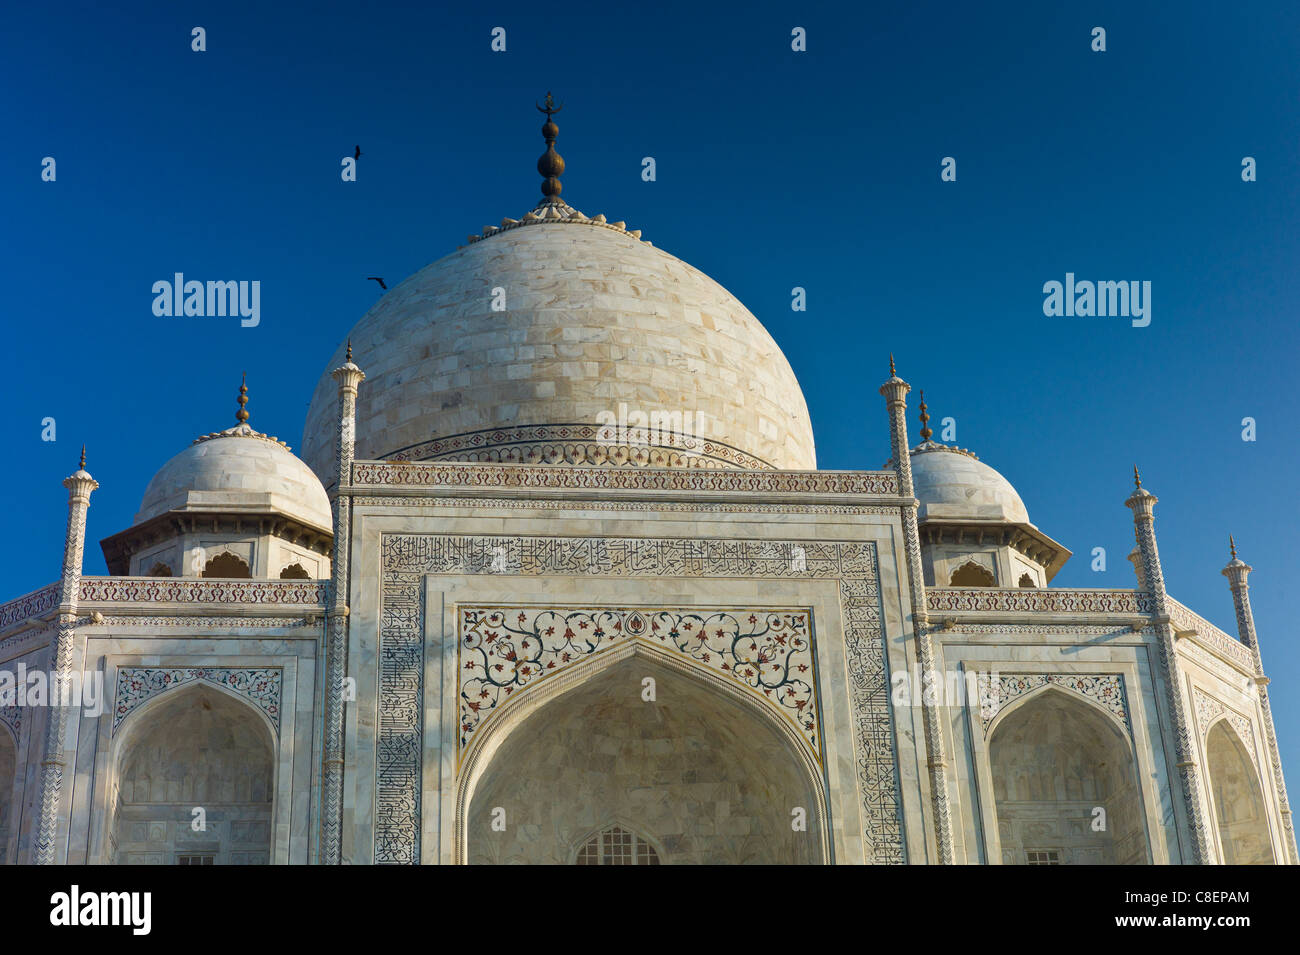 Taj Mahal mausoleum with birds flying, southern view detail of iwans with bas relief marble, Uttar Pradesh, India - Stock Image